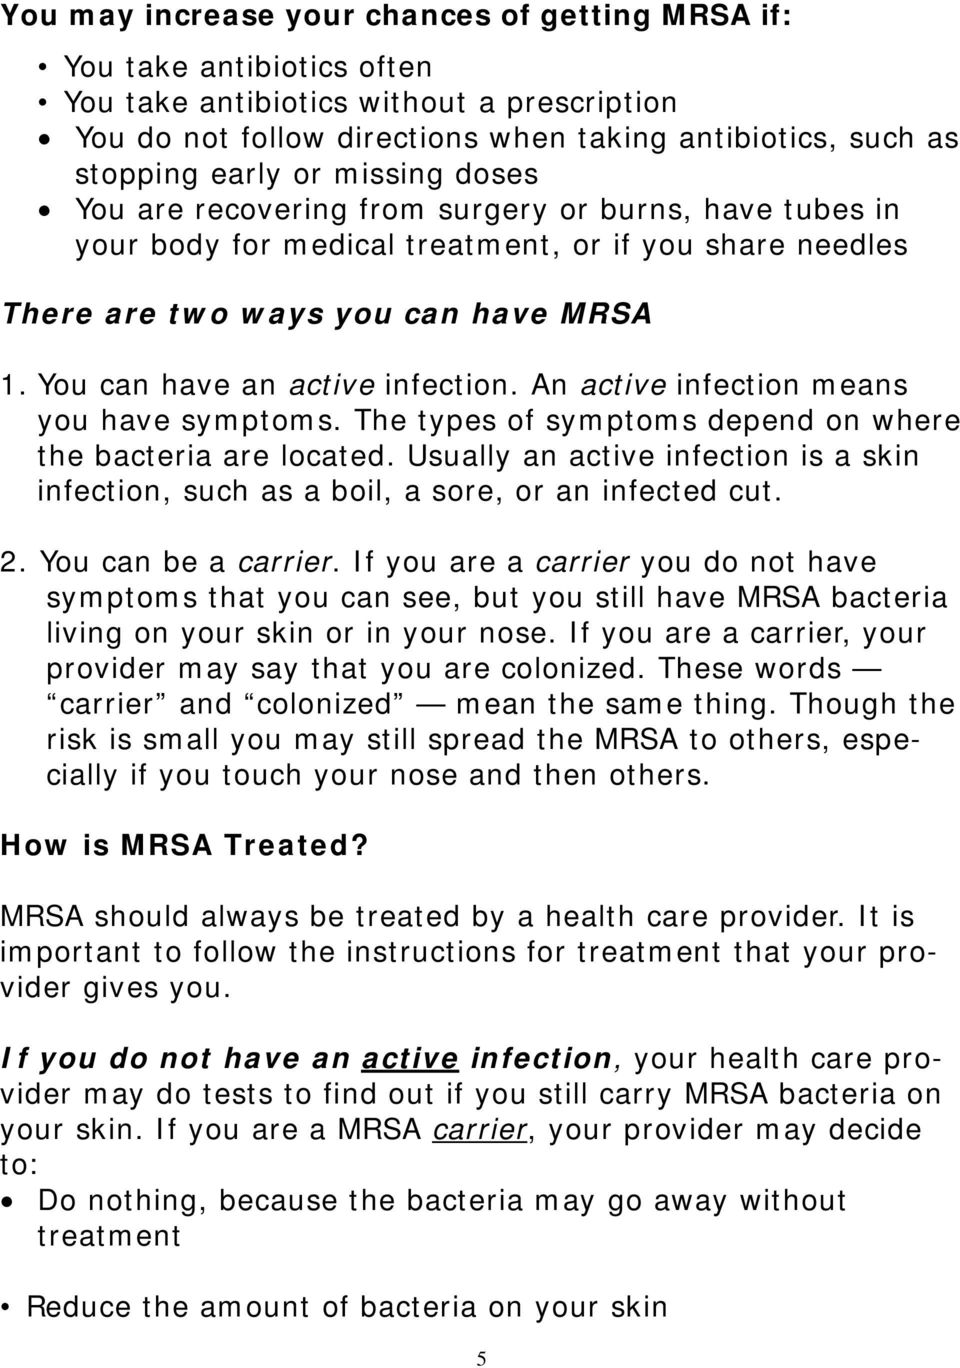 What is MRSA and How Does It Impact Me? - PDF